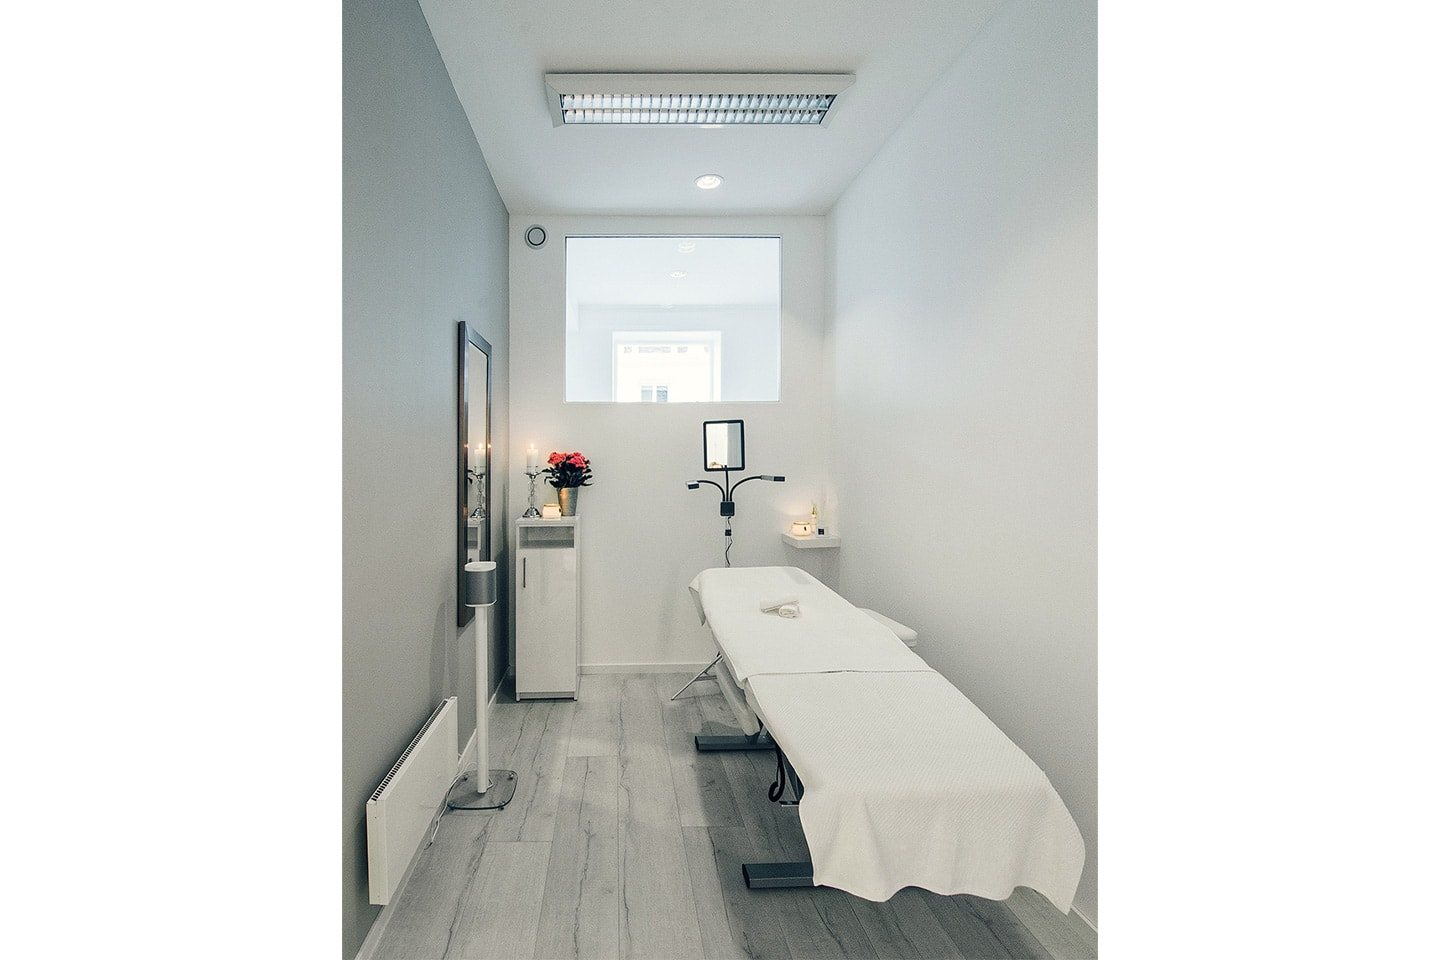 Vippe-extension hos eksklusive Face & Brow Studio